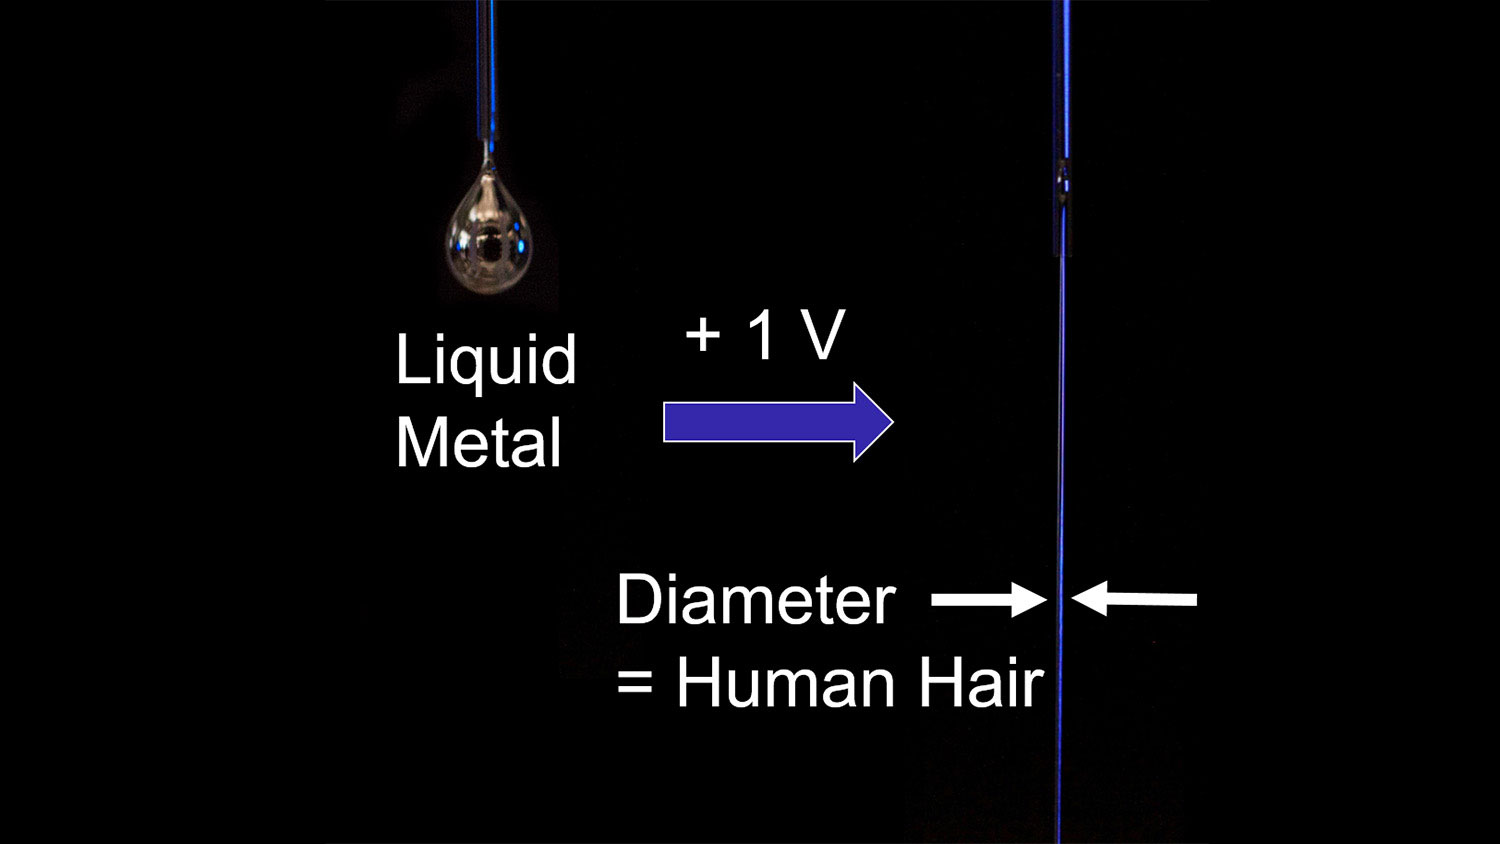 A droplet of liquid metal turns to a stream of liquid metal when a small voltage is applied.